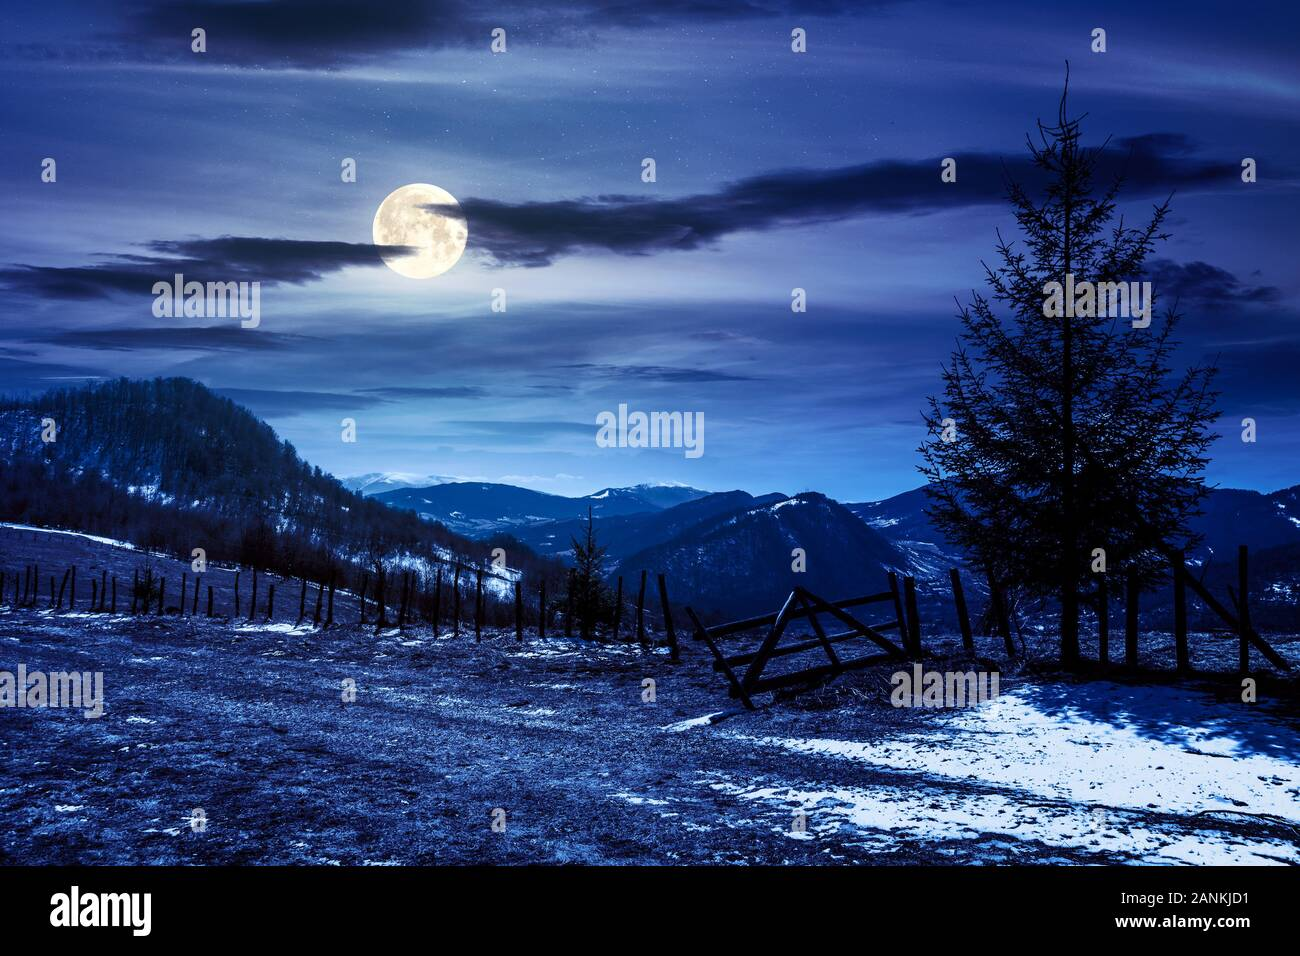 Spruce Trees On The Mountain Hill At Night Early Springtime Weather With Clouds On The Sky In Full Moon Light Snow And Grass On The Meadow Valley A Stock Photo Alamy Clouds mountains trees grass spruce fog